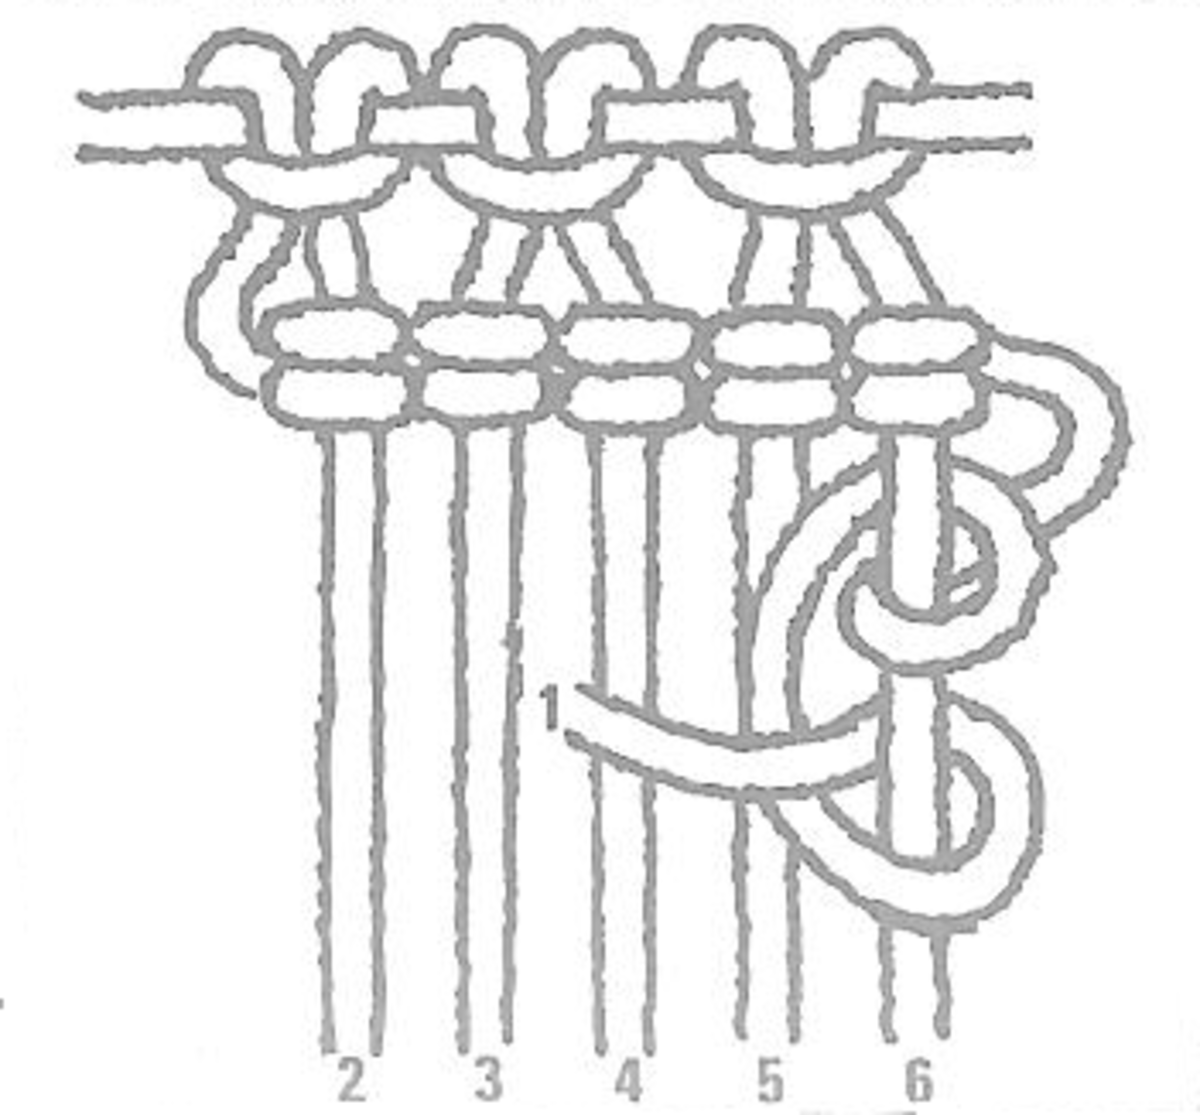 Figure 13 - Vertical Half Hitch Cording